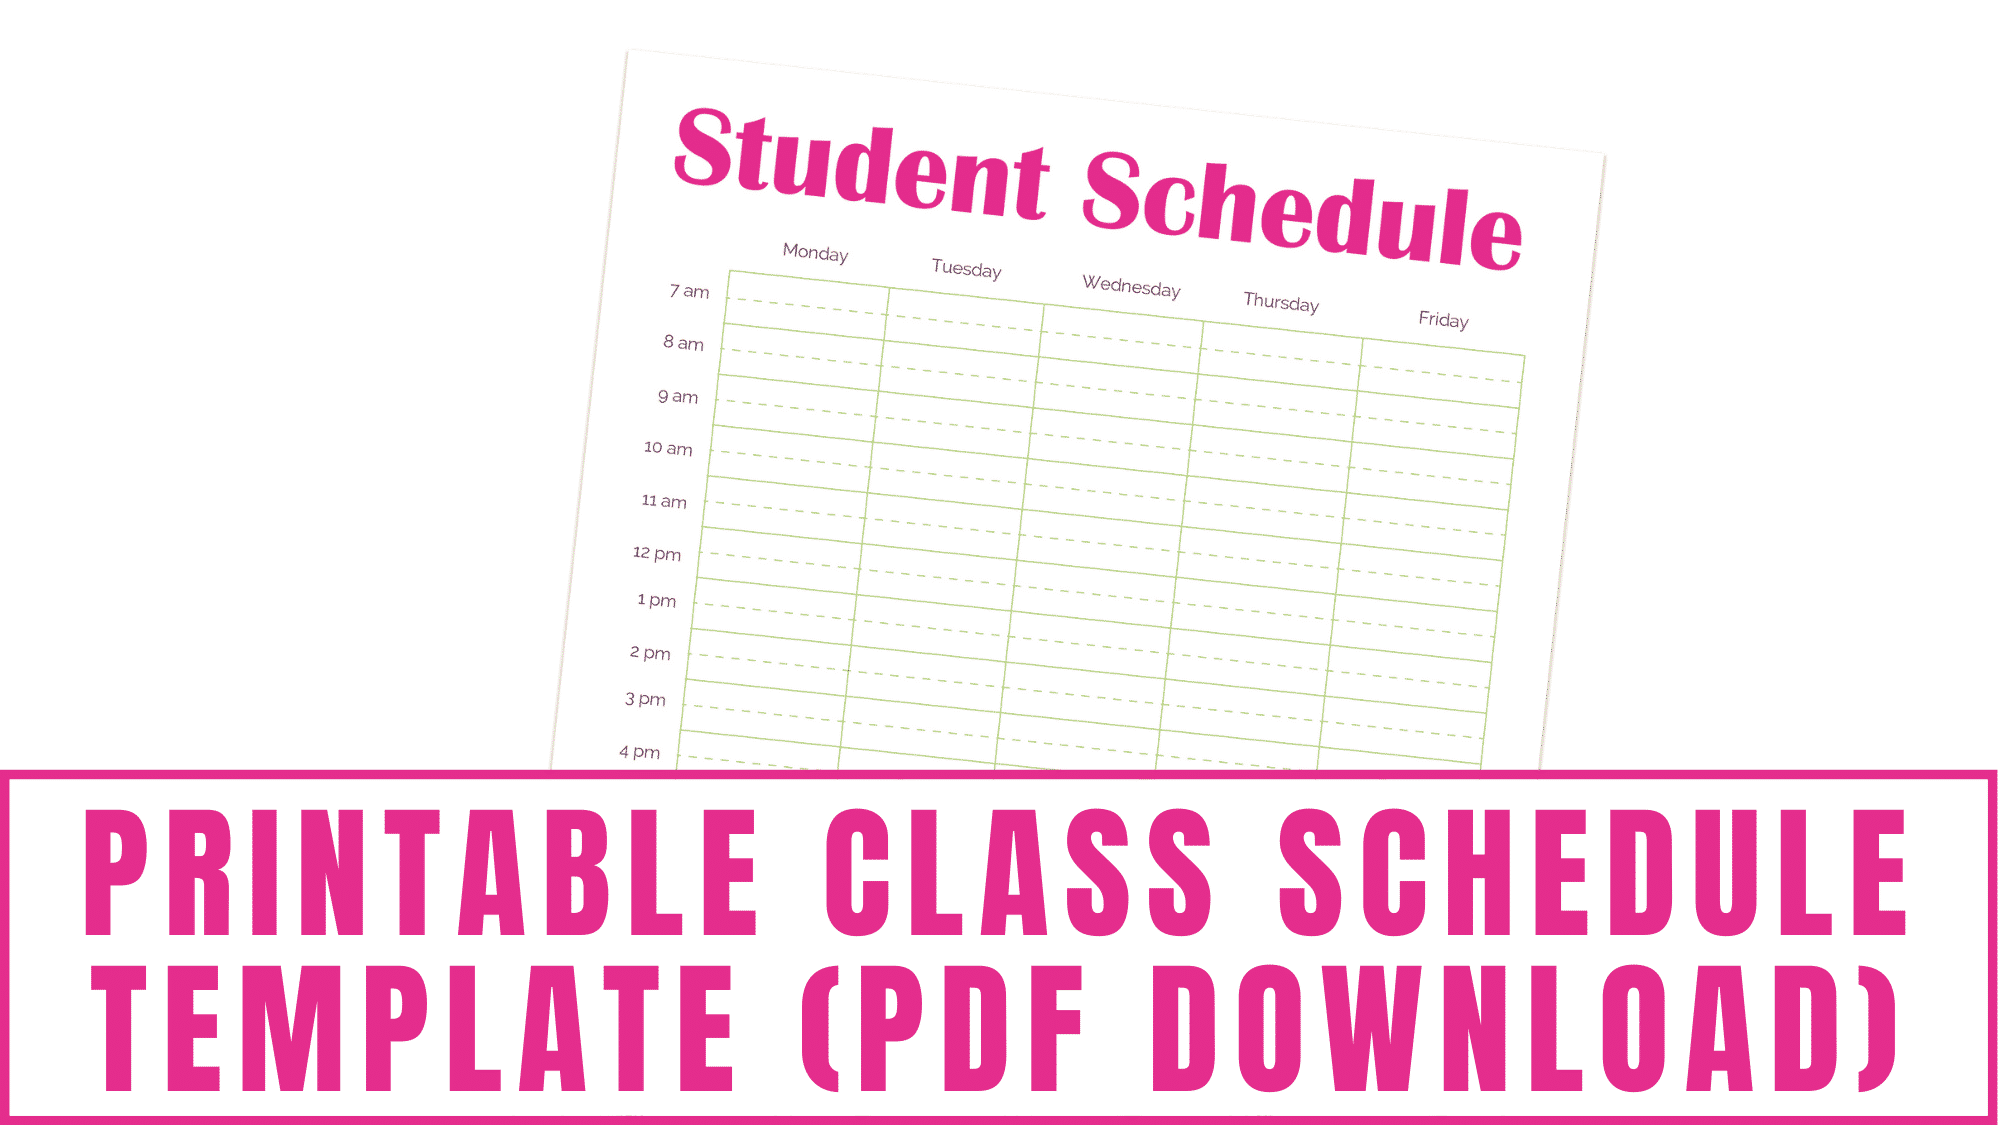 This printable class schedule template PDF download will help you keep on top of your school assignments, appointments, extracurricular activities and more.